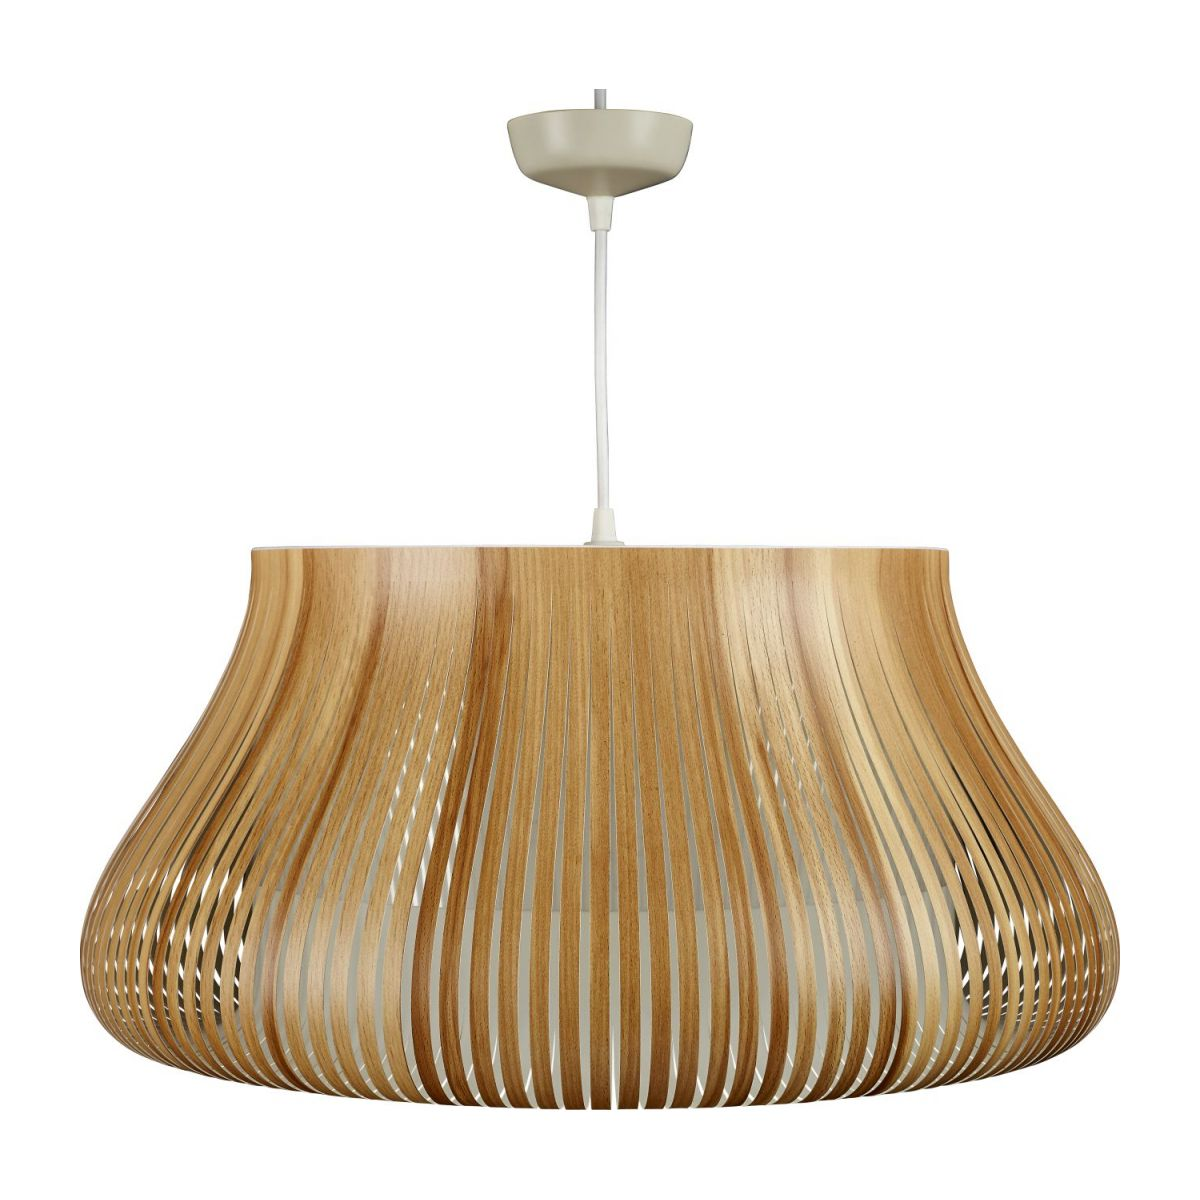 Ceiling lamp in PVC, natural wood n°3